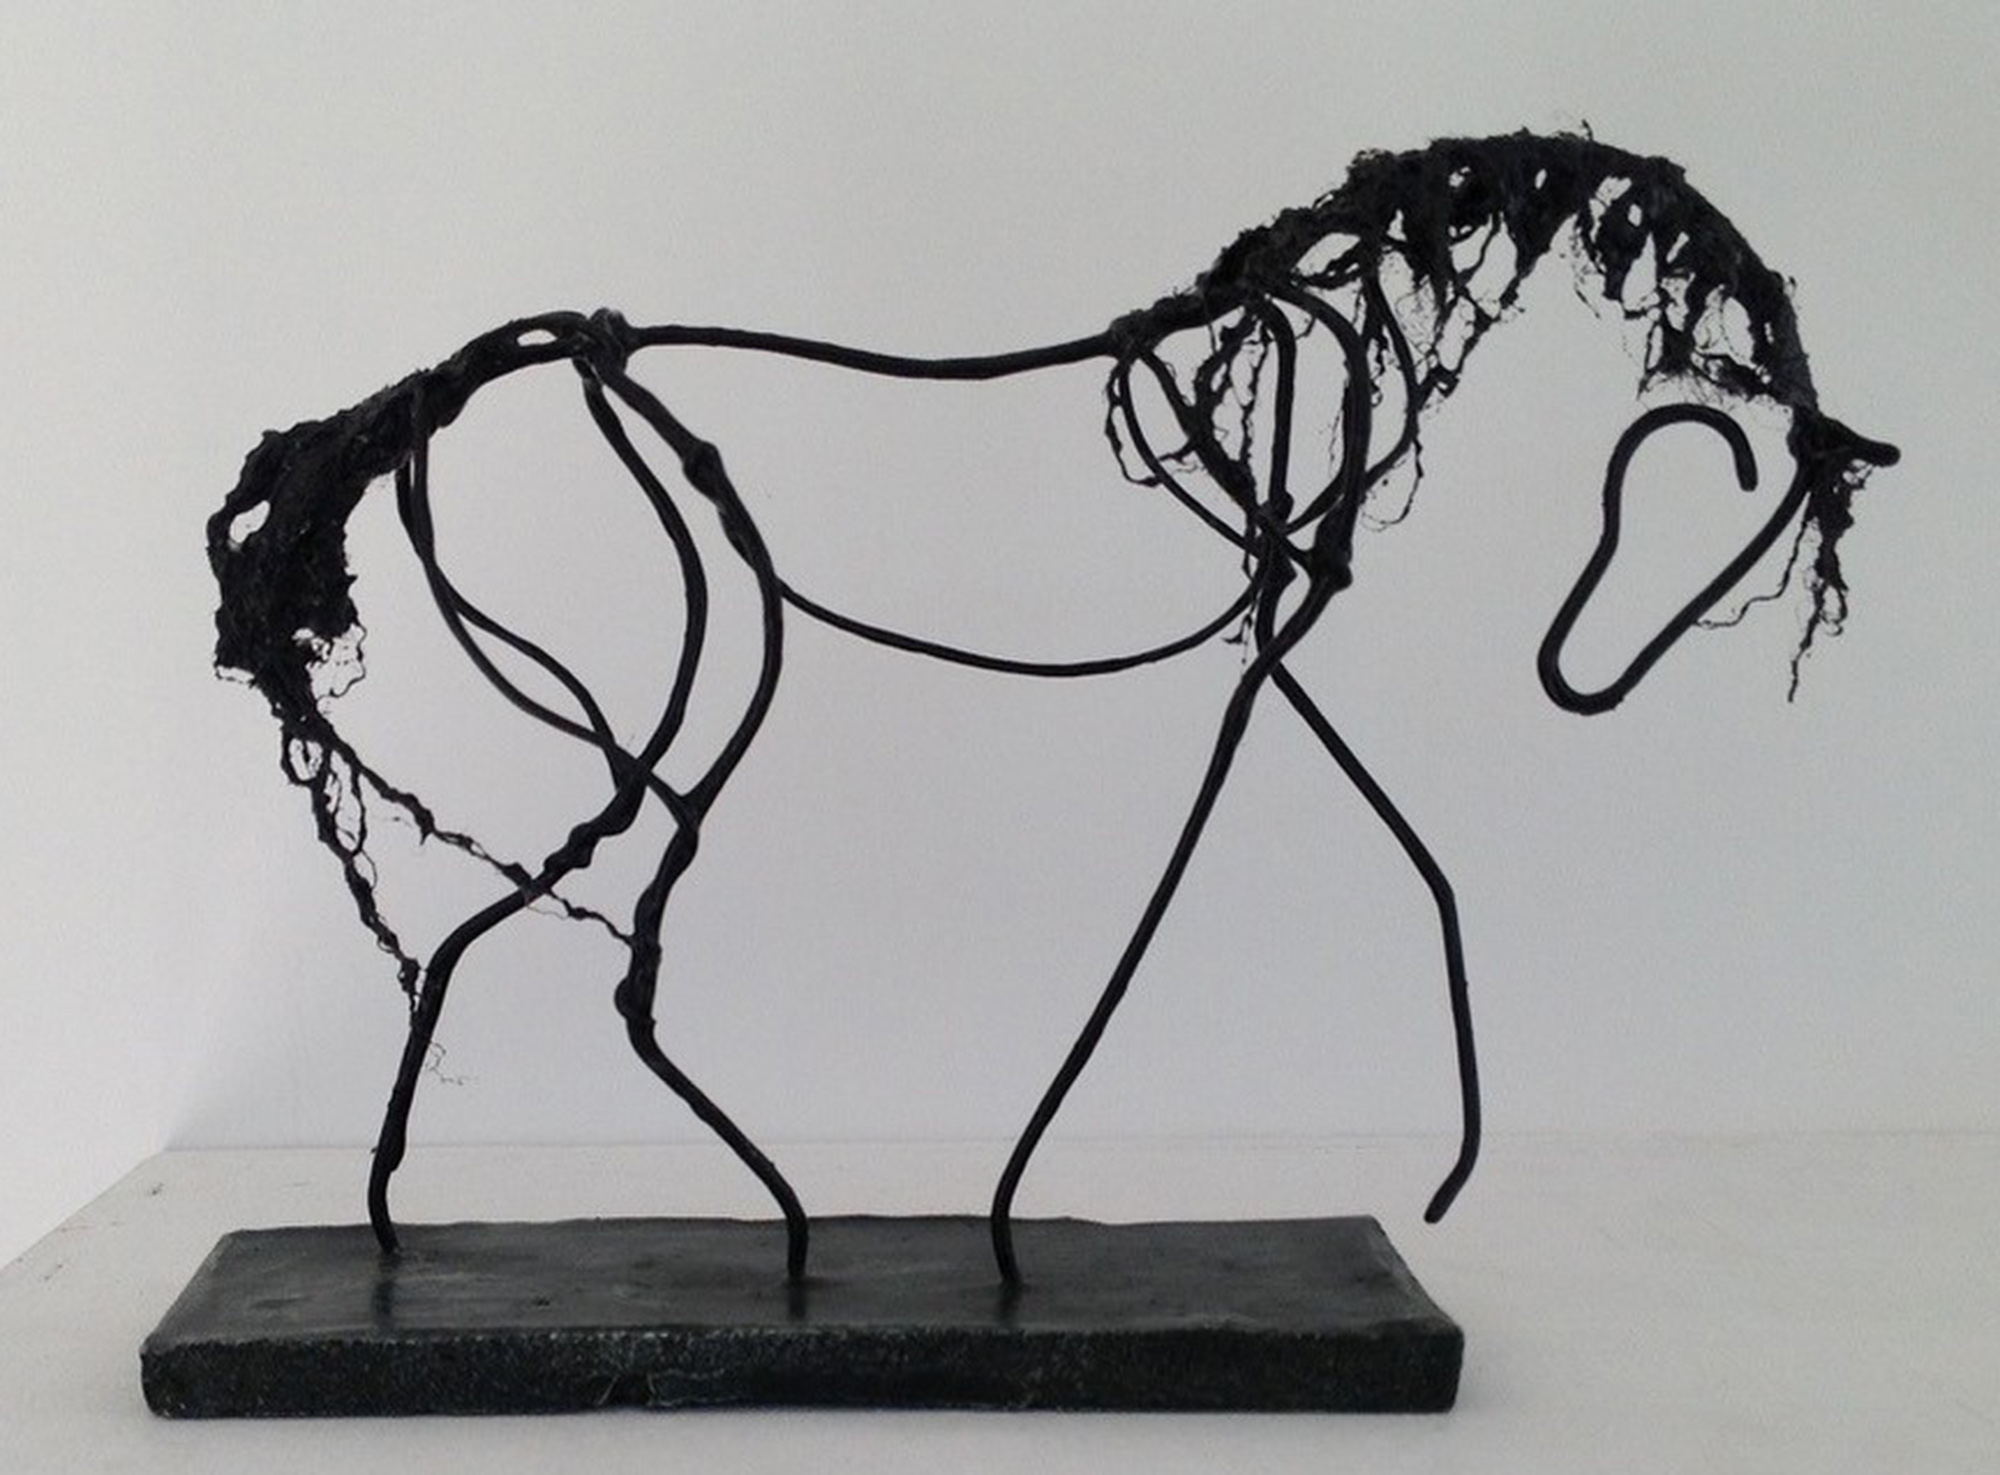 Image of horse made of wire